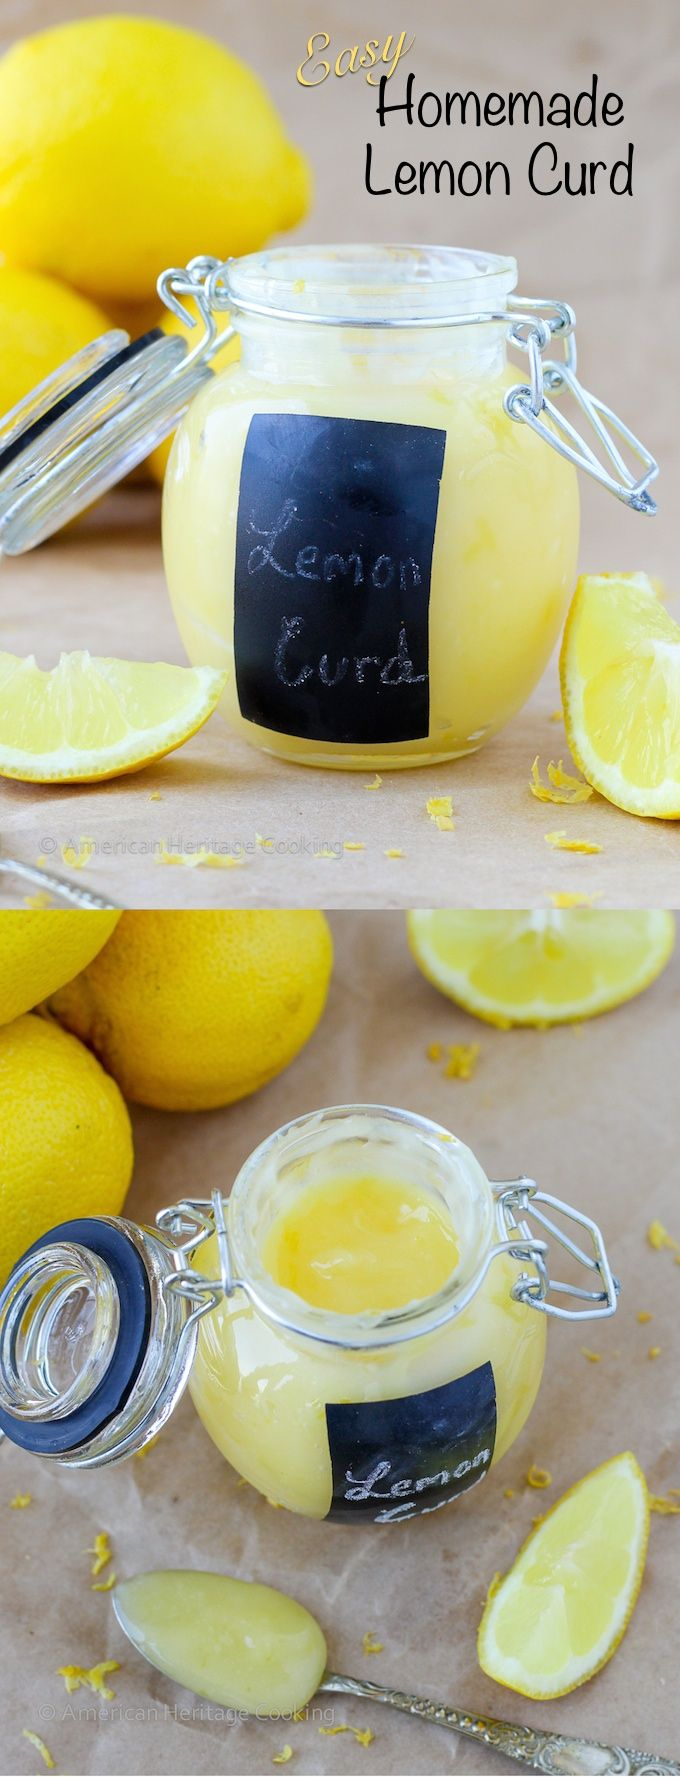 Easy Homemade Lemon Curd | this recipe uses the whole egg so no waste or leftovers! ~ American Heritage Cooking